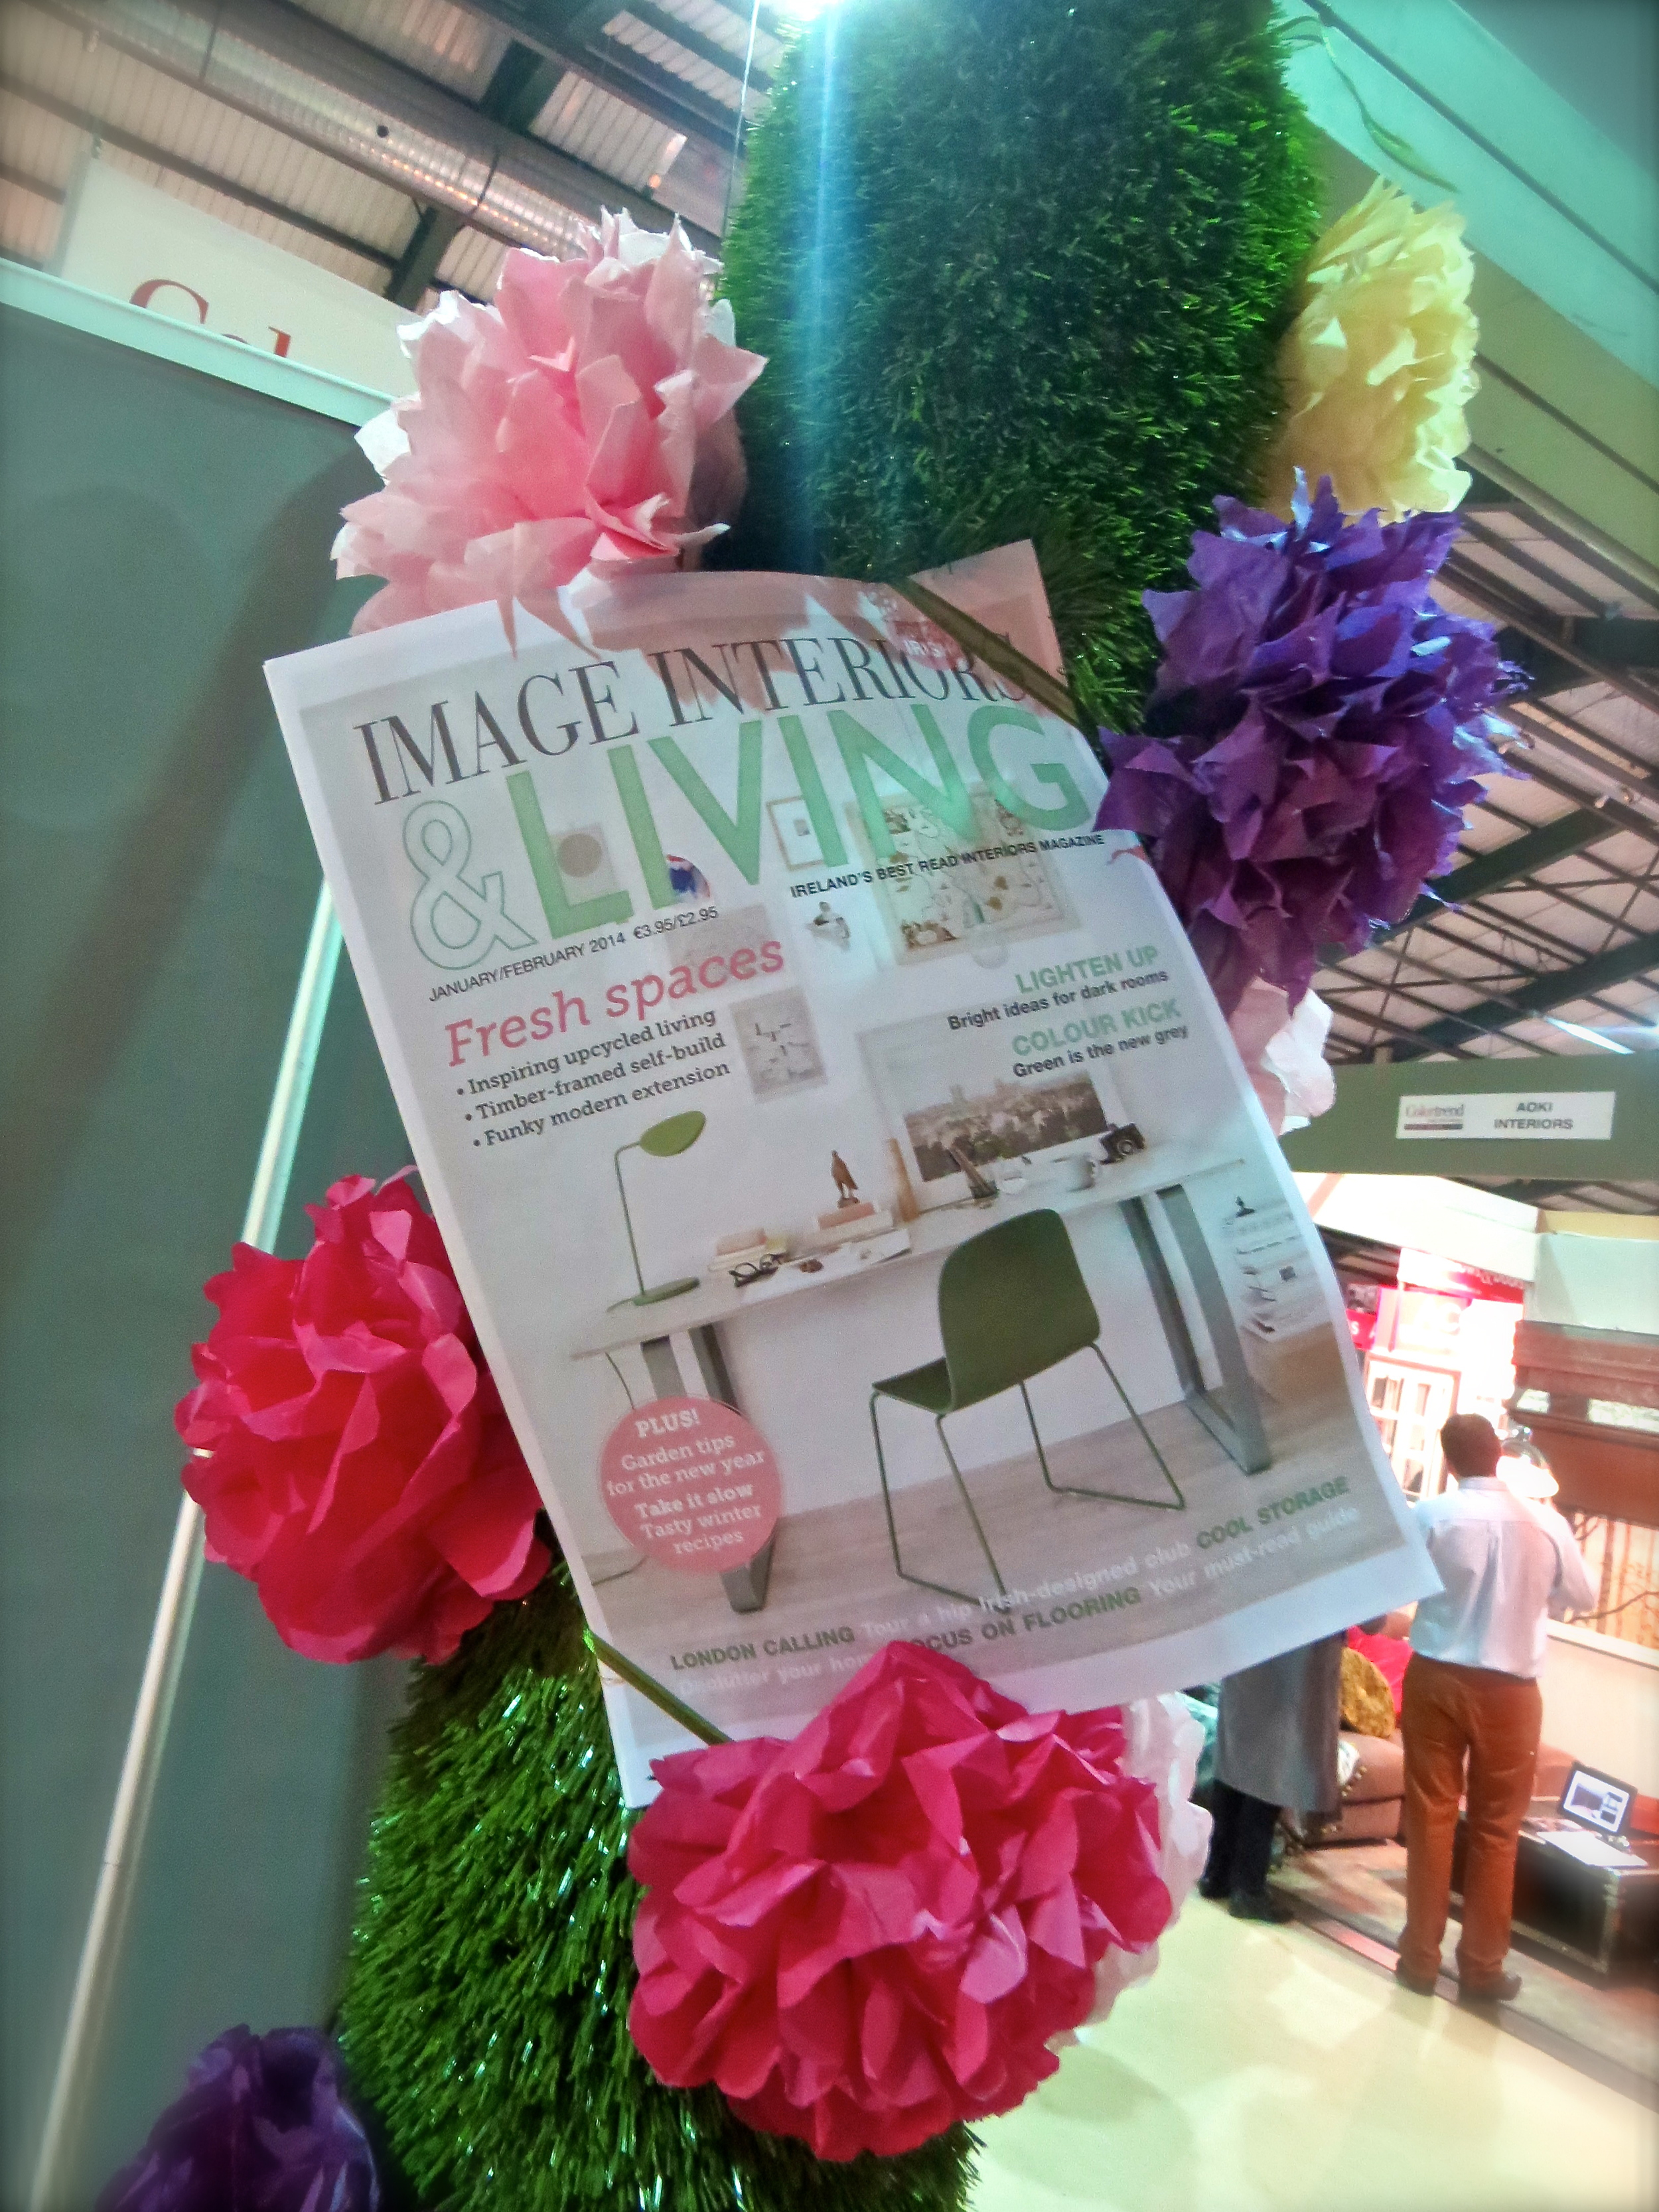 synthetic grass at interiors show